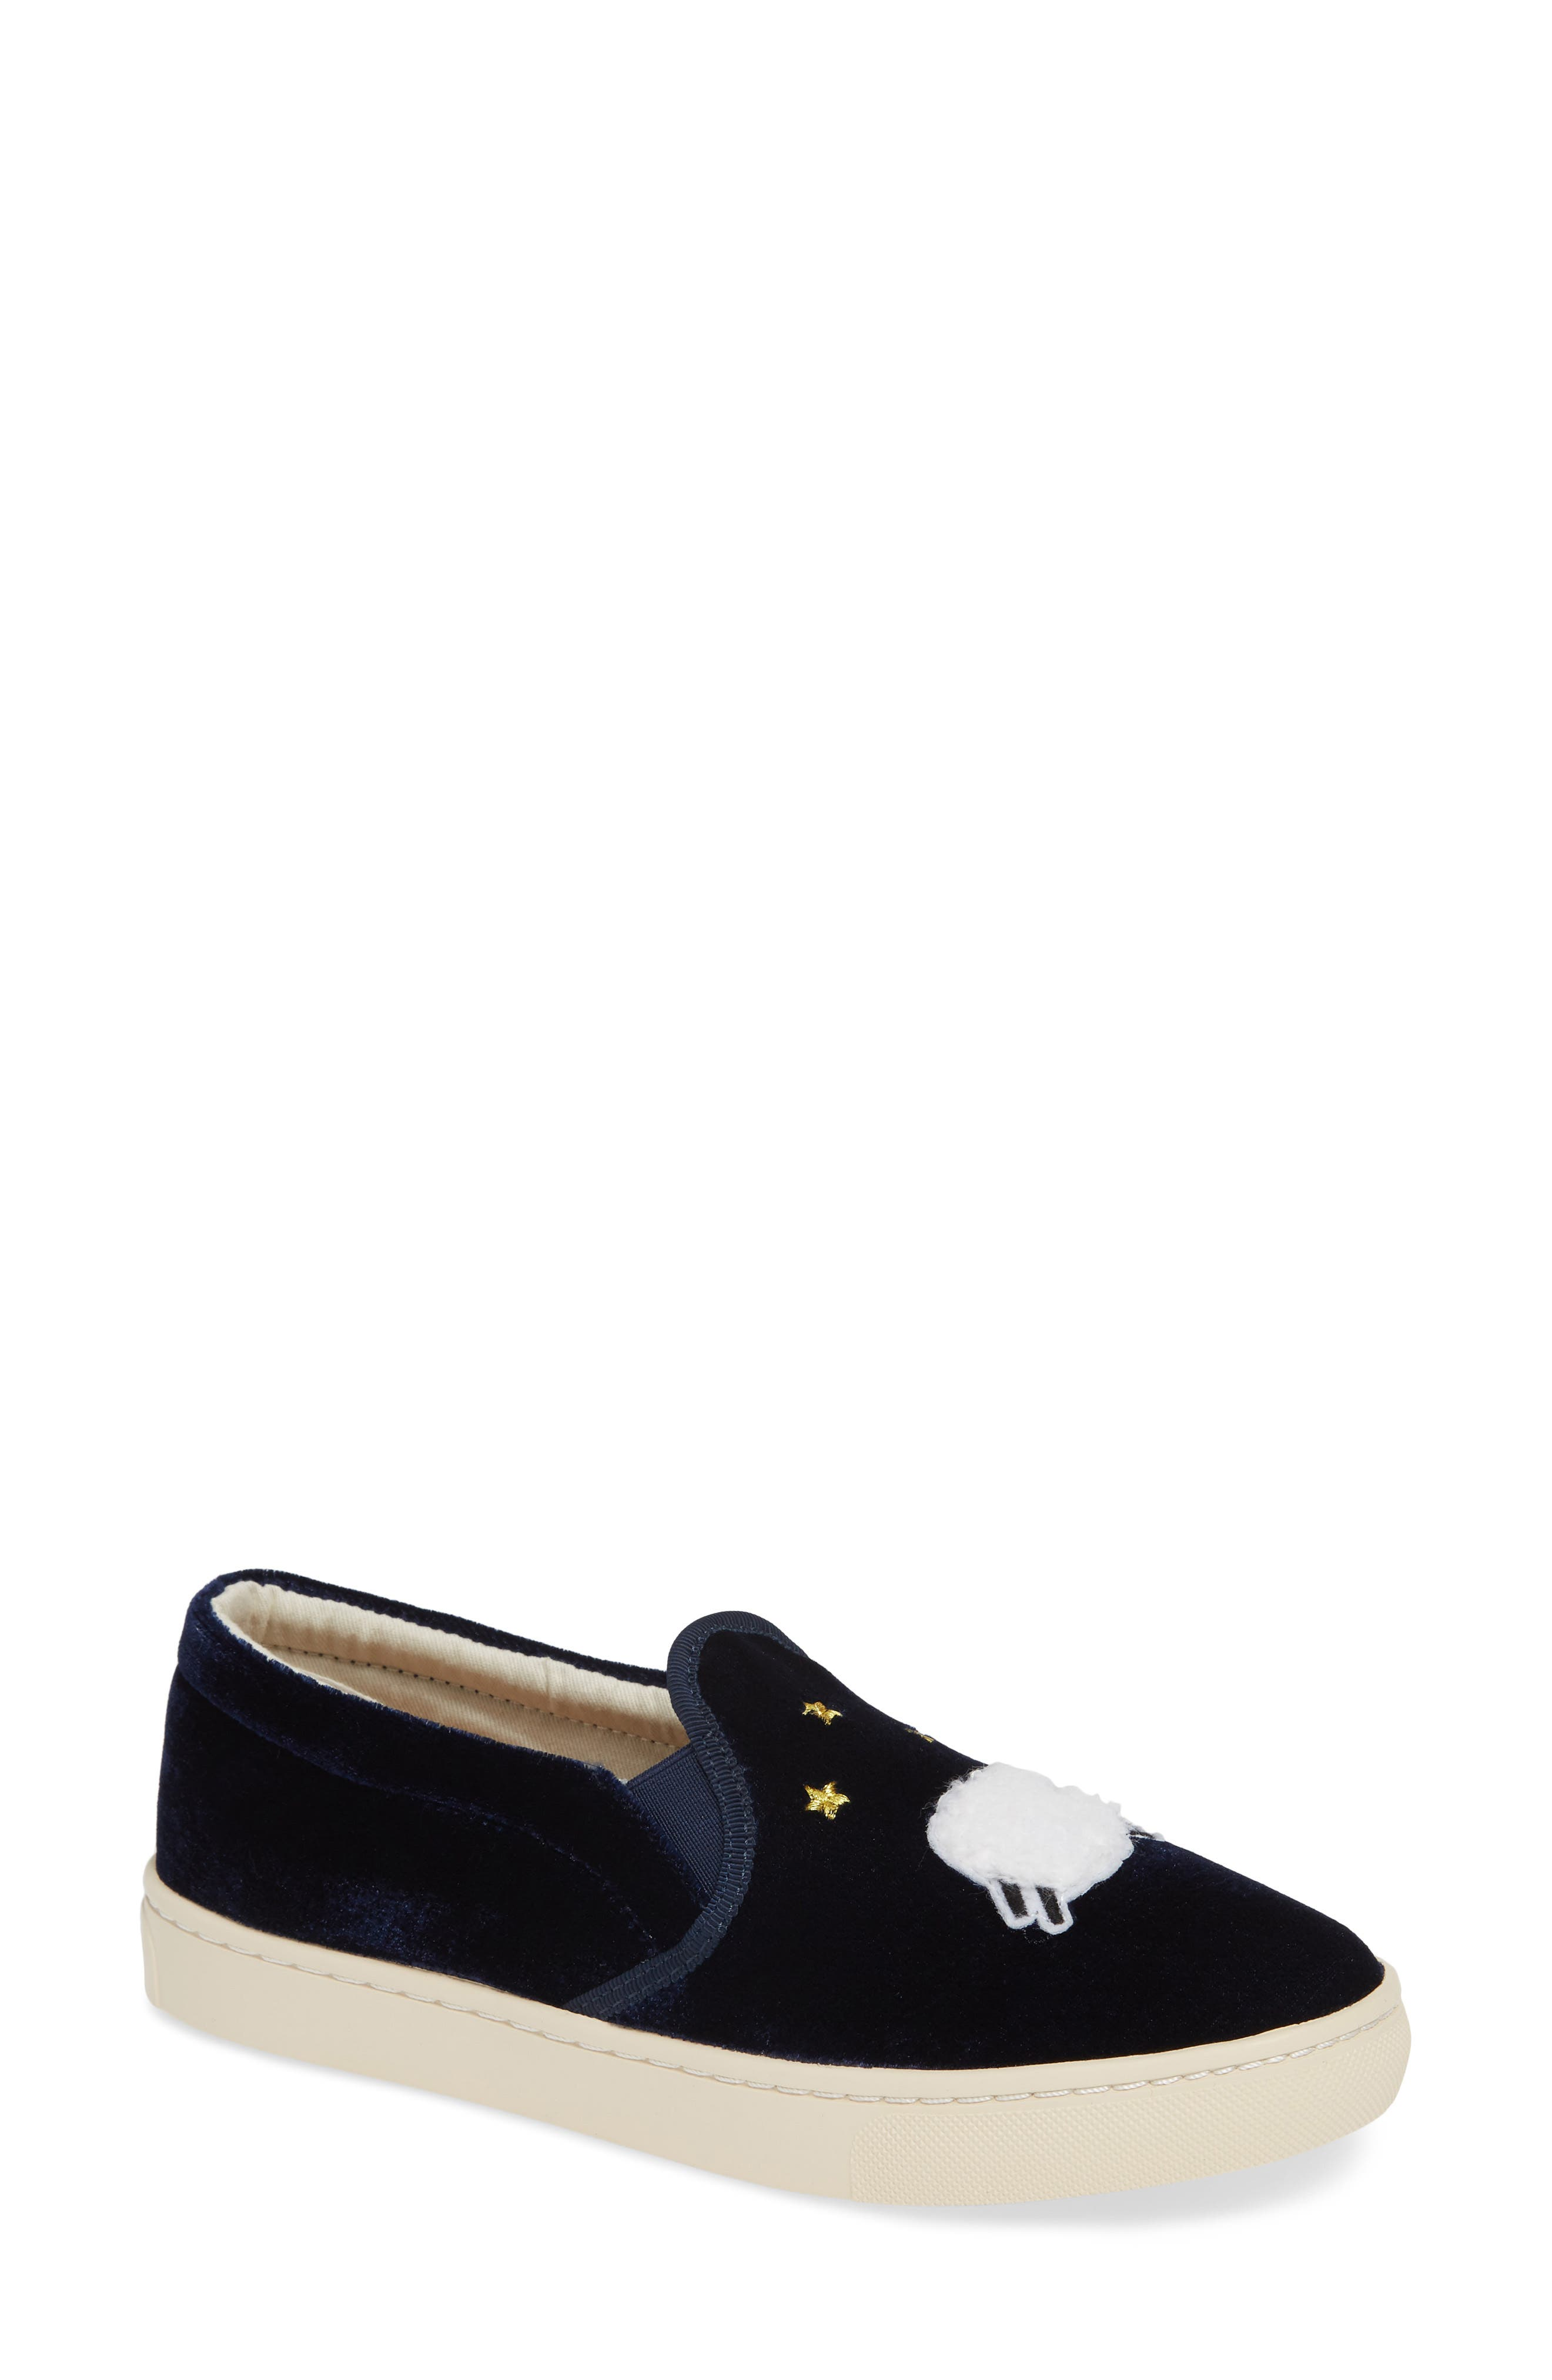 Soludos APPLIQUE SLIP-ON SNEAKER